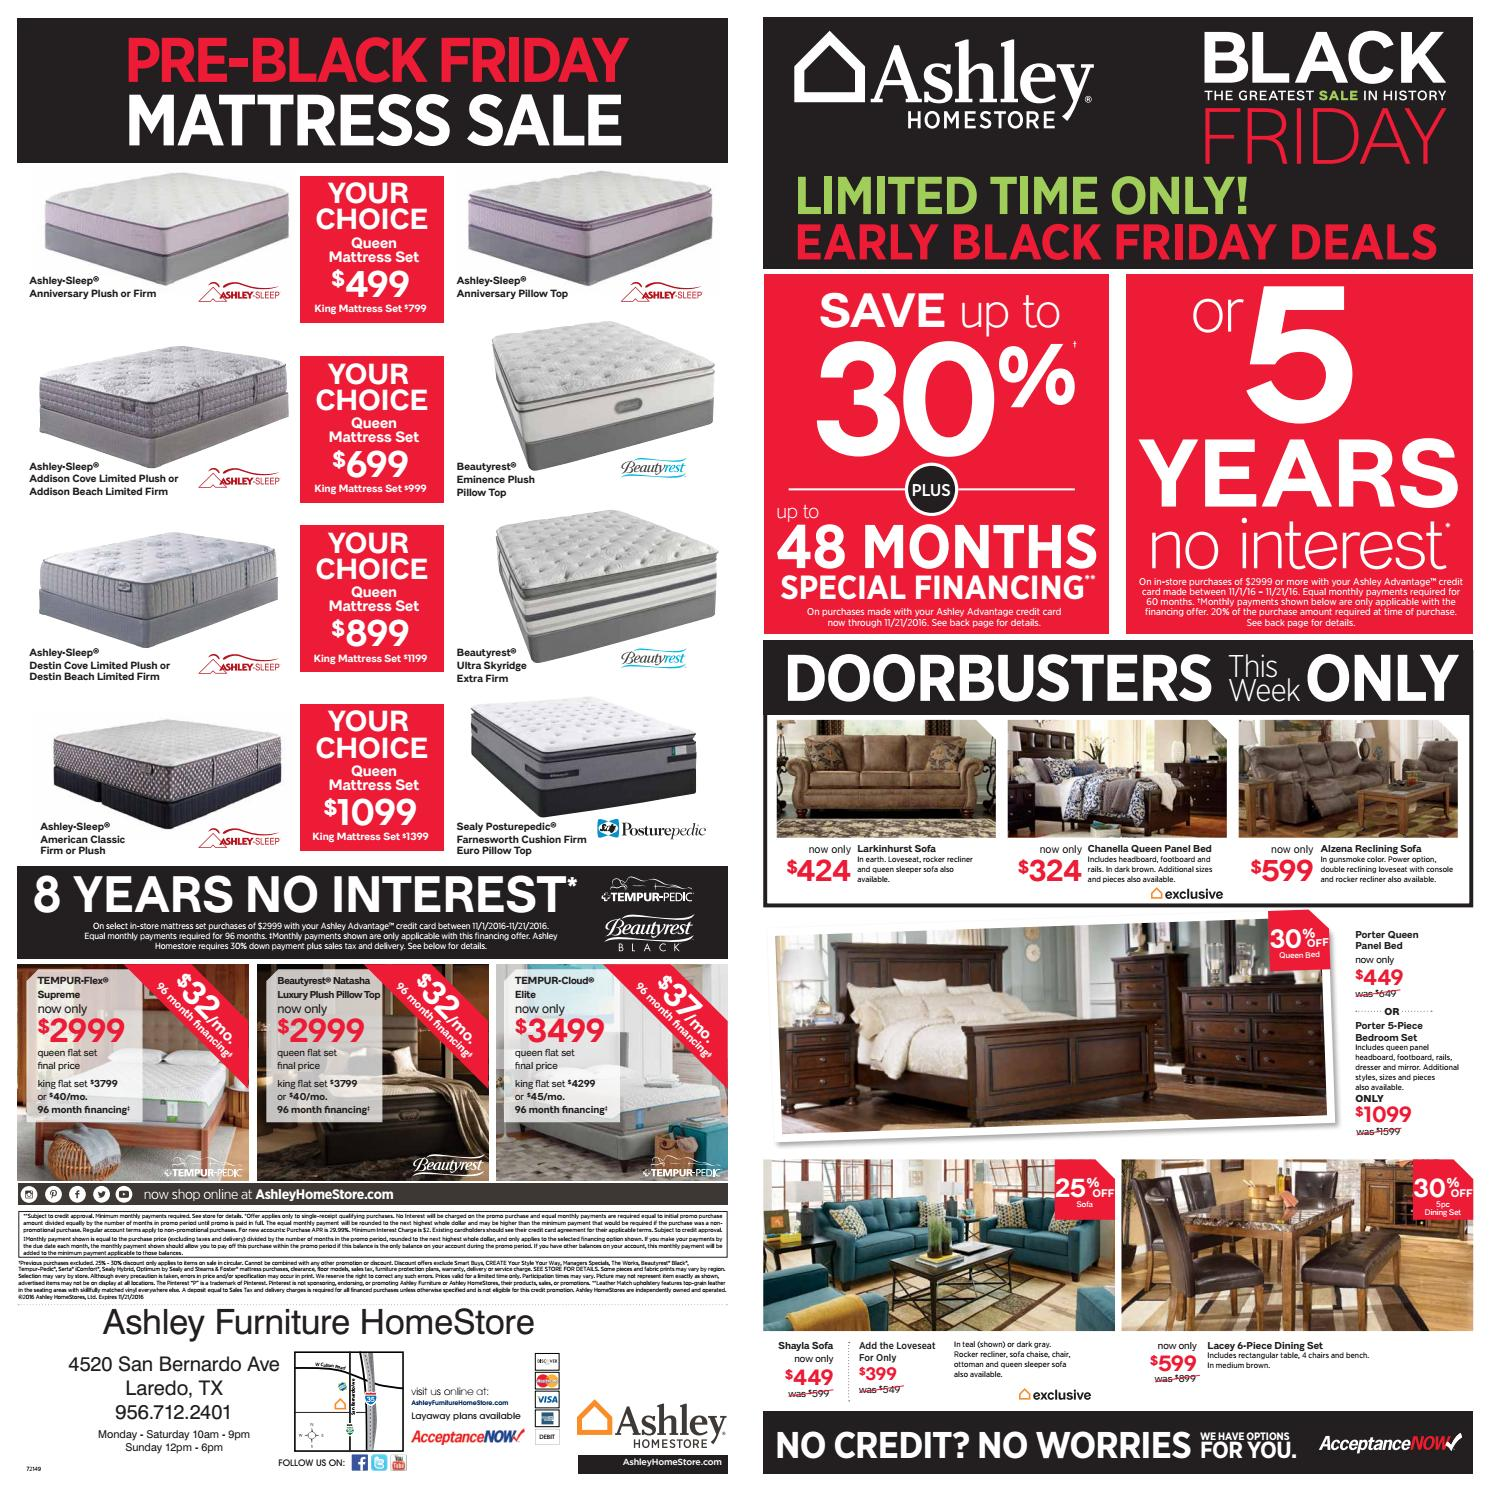 Pre-Black Friday Event By Ashley Furniture HomeStore Of